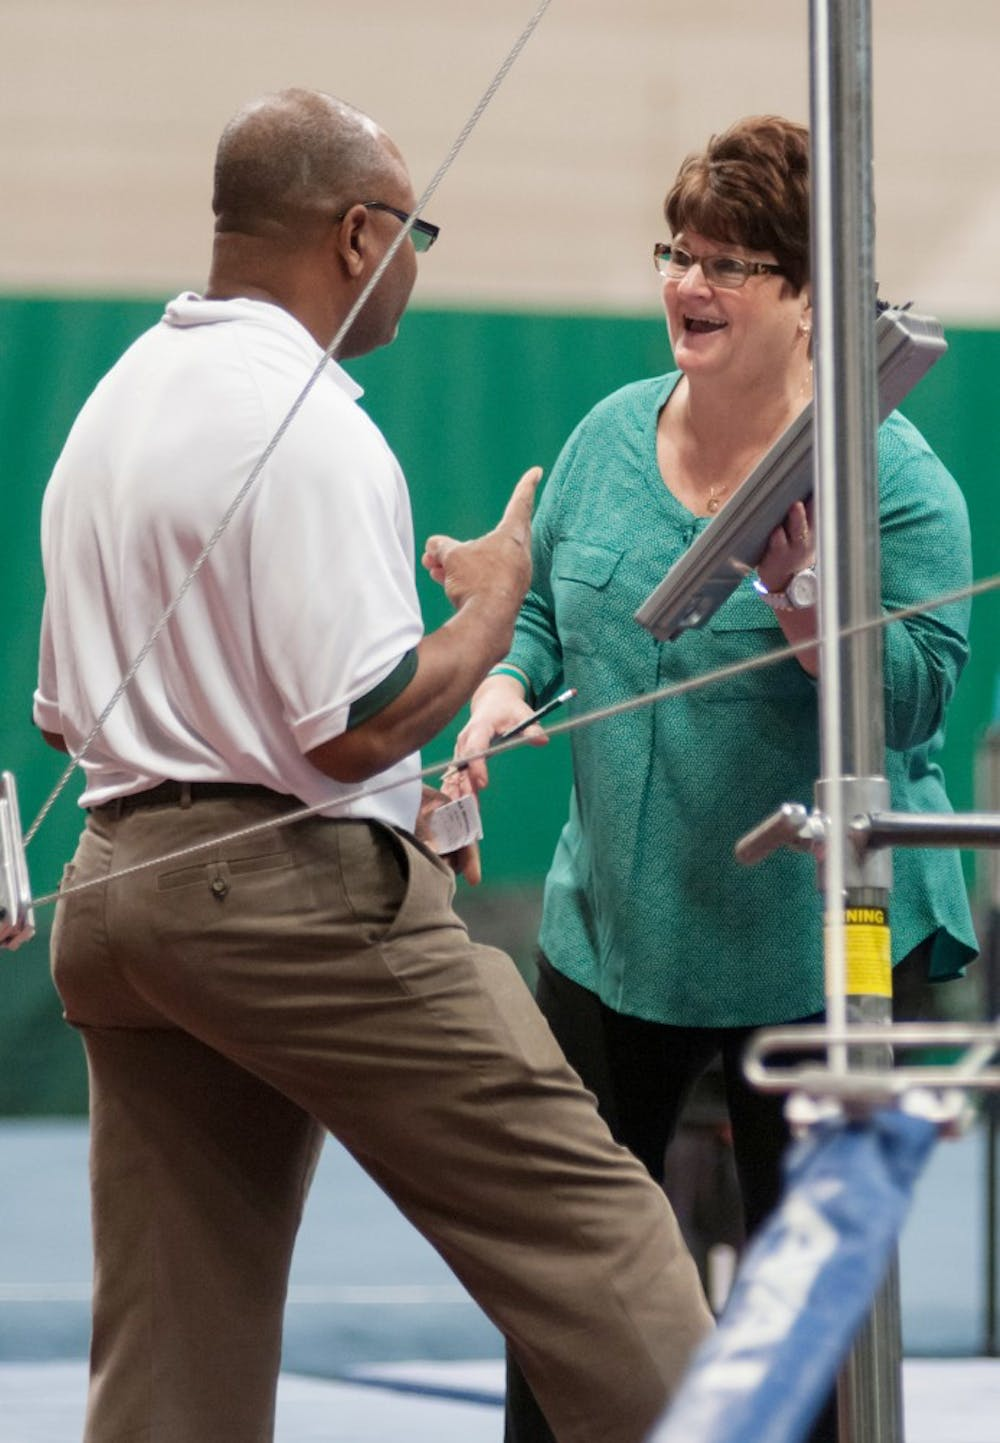 Head coach Kathie Klages and assistant coach Mo Mitchell of the MSU women's gymnastics team converse between events during a meet with Pittsburgh on Jan. 18, 2014, at Jenison Field House. Casey Hull/The State News